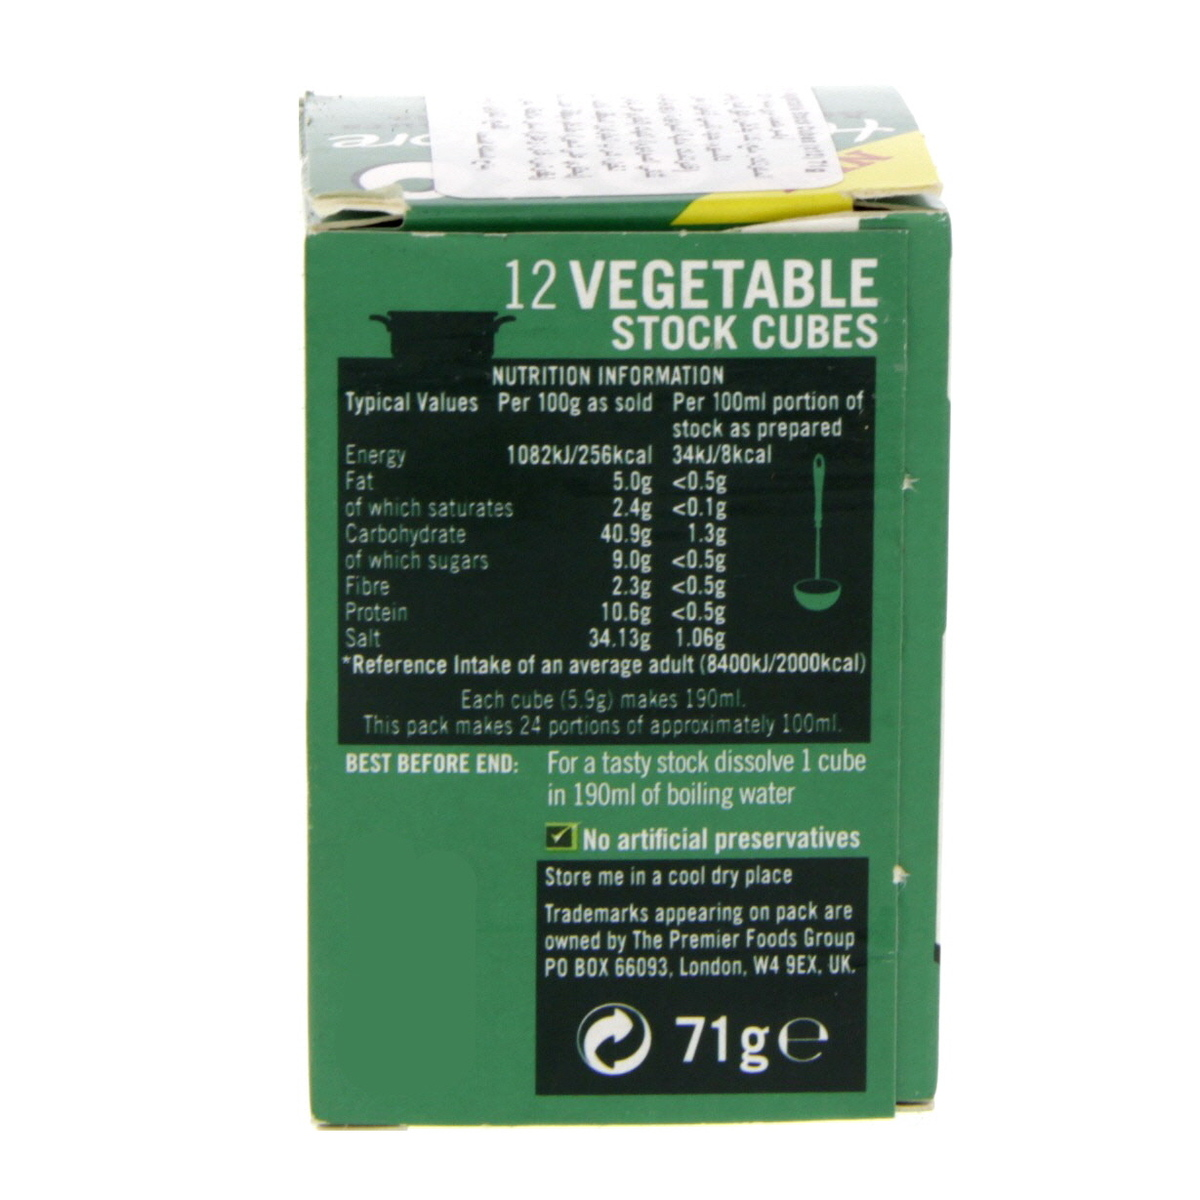 Buy Oxo Vegetable Stock Cubes 12 x 71g - Bouillons